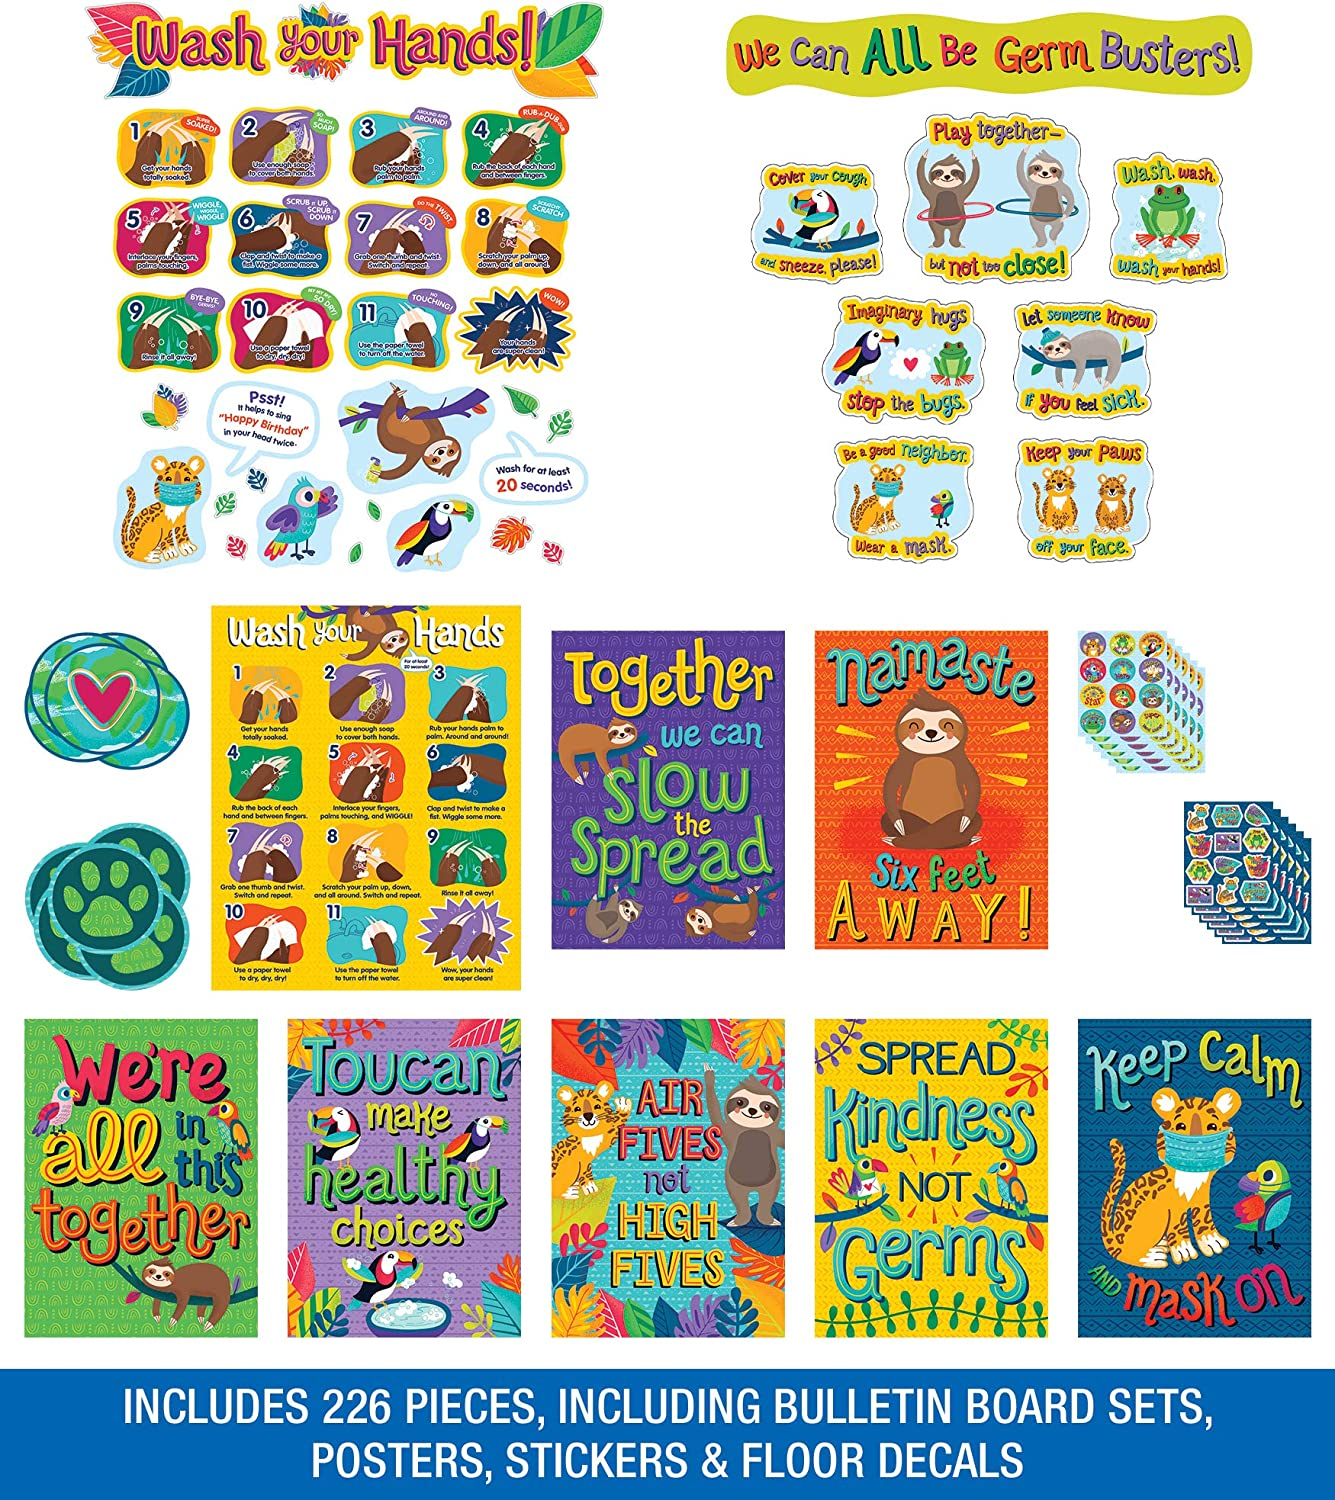 Carson-Dellosa One World Social Distancing Classroom Decorations, Floor Decals, Wash Your Hands Bulletin Board Set, Stickers, Classroom Posters, 226 Pieces (145186)